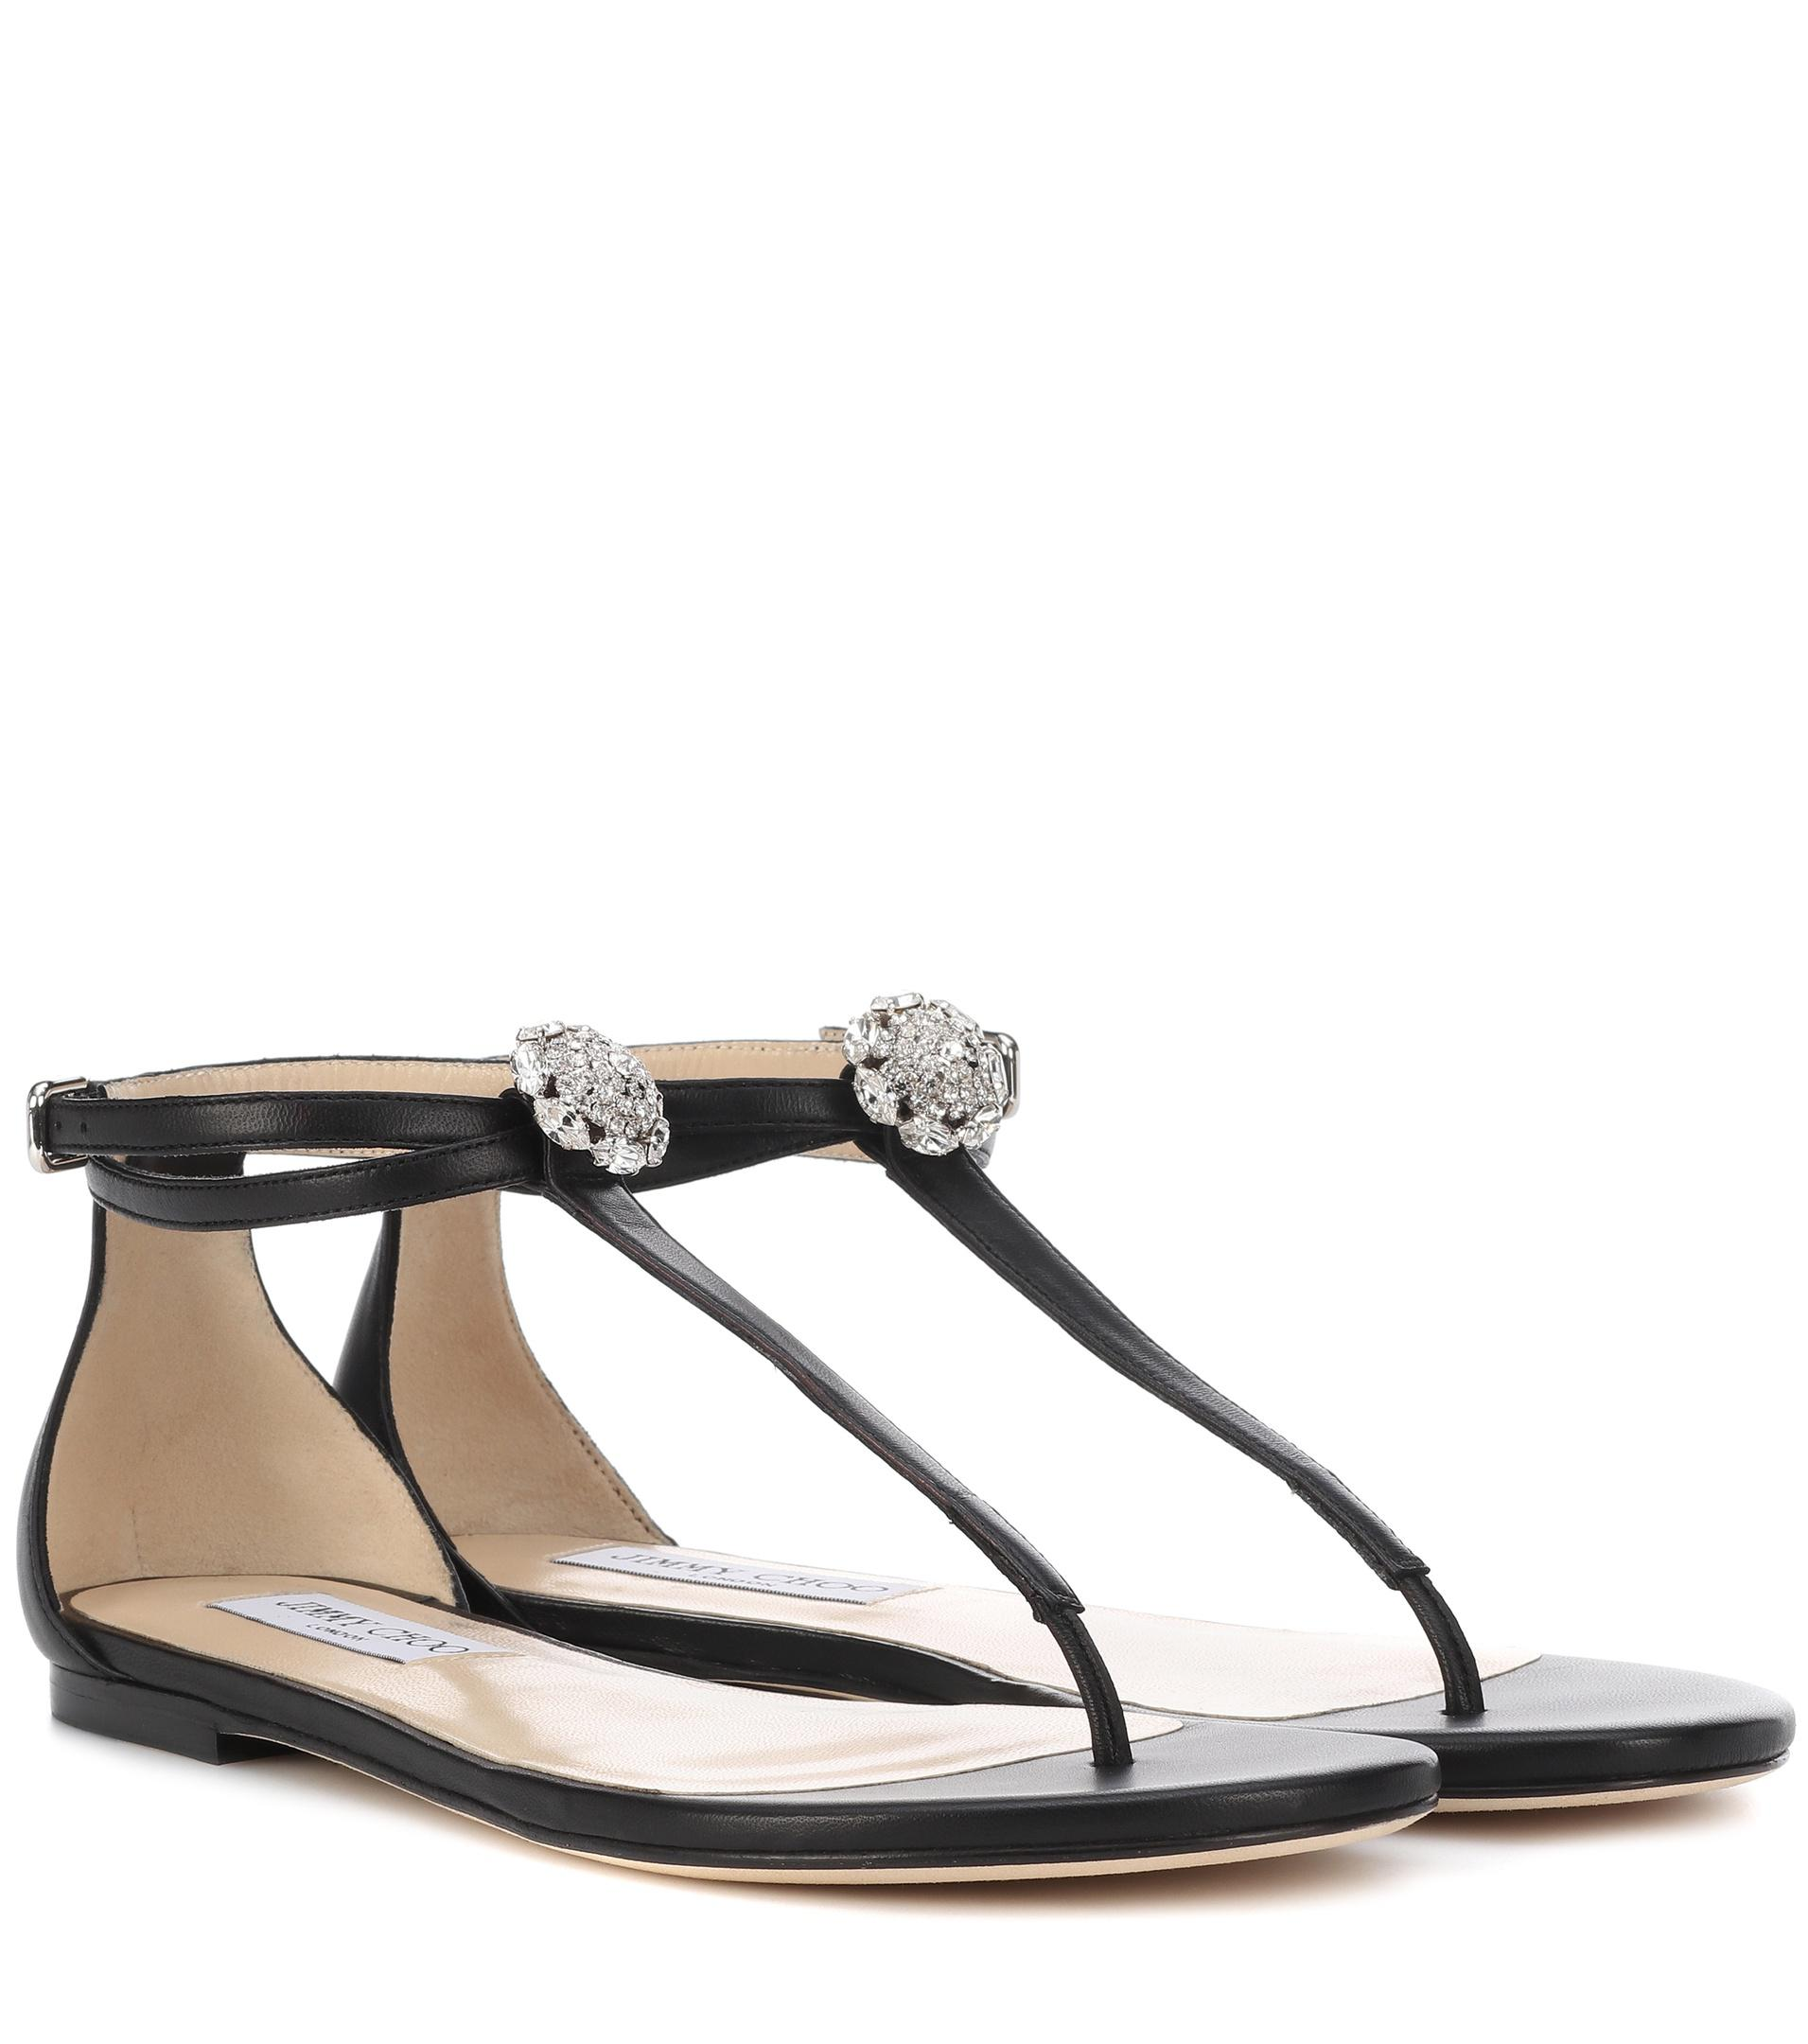 f65f7e29e746 Lyst - Jimmy Choo Afia Flat Leather Sandals in Black